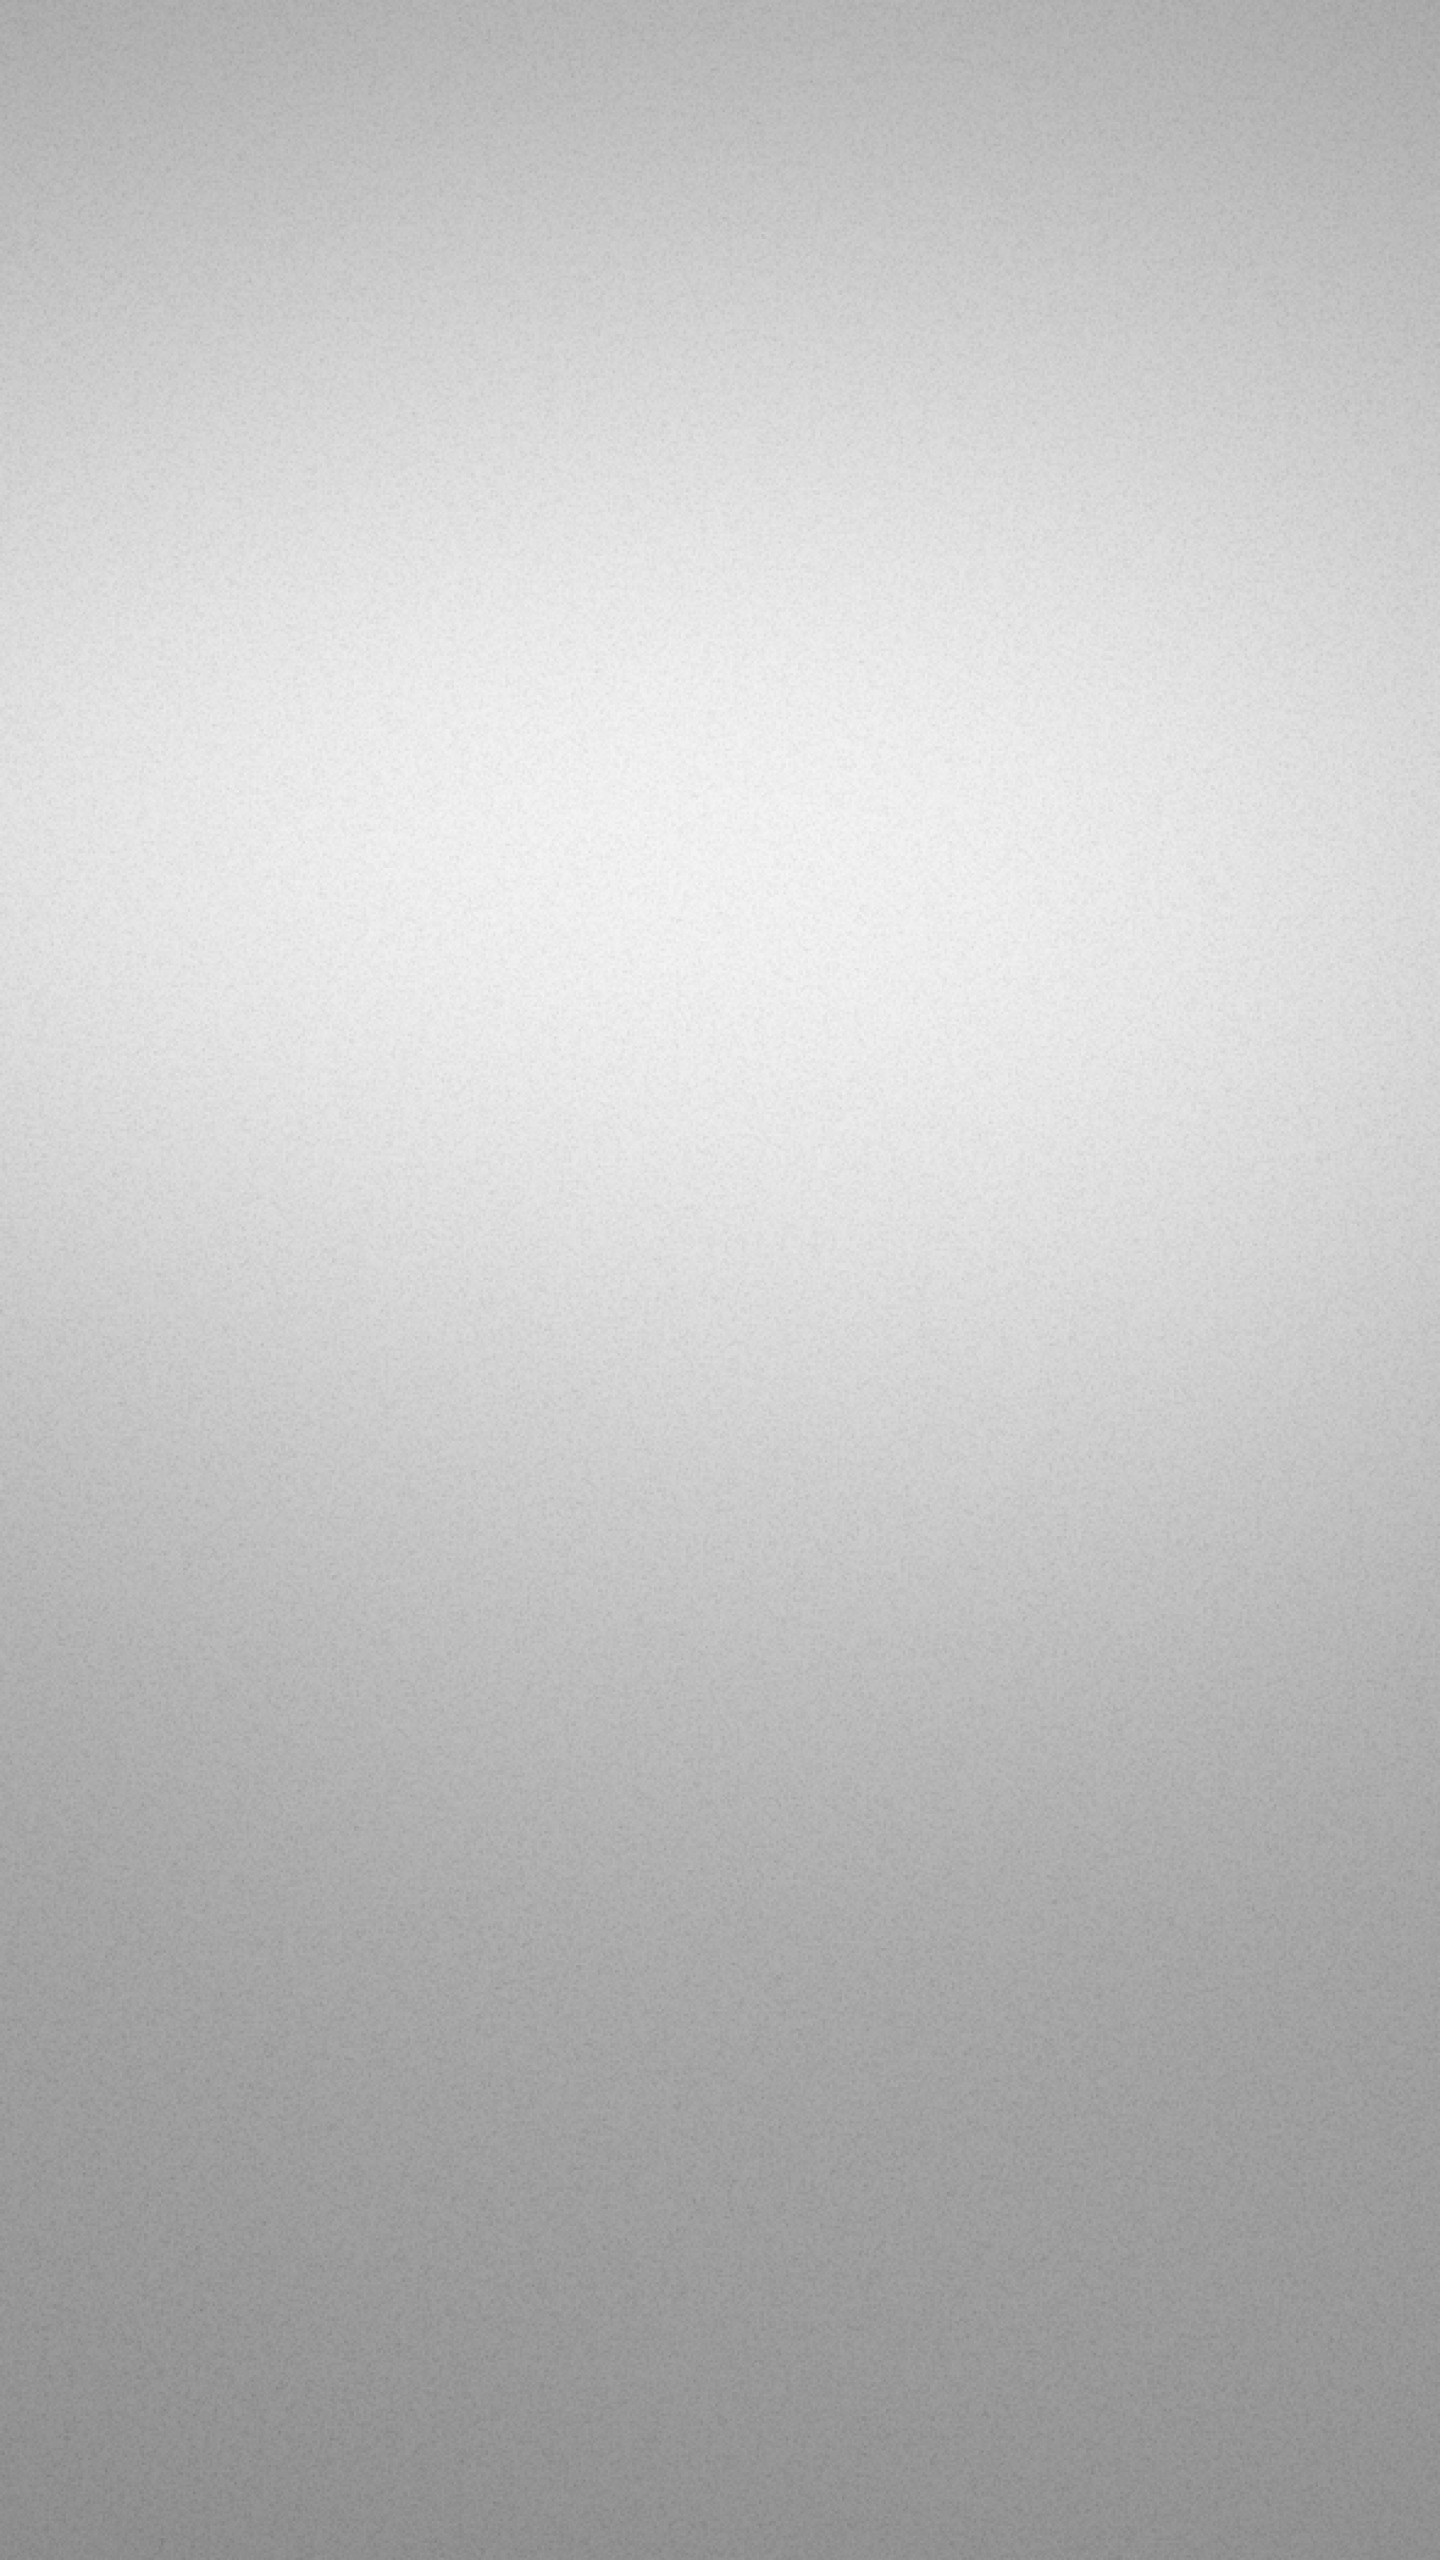 Light Gray background  Download free wallpapers for desktop mobile laptop in any resolution